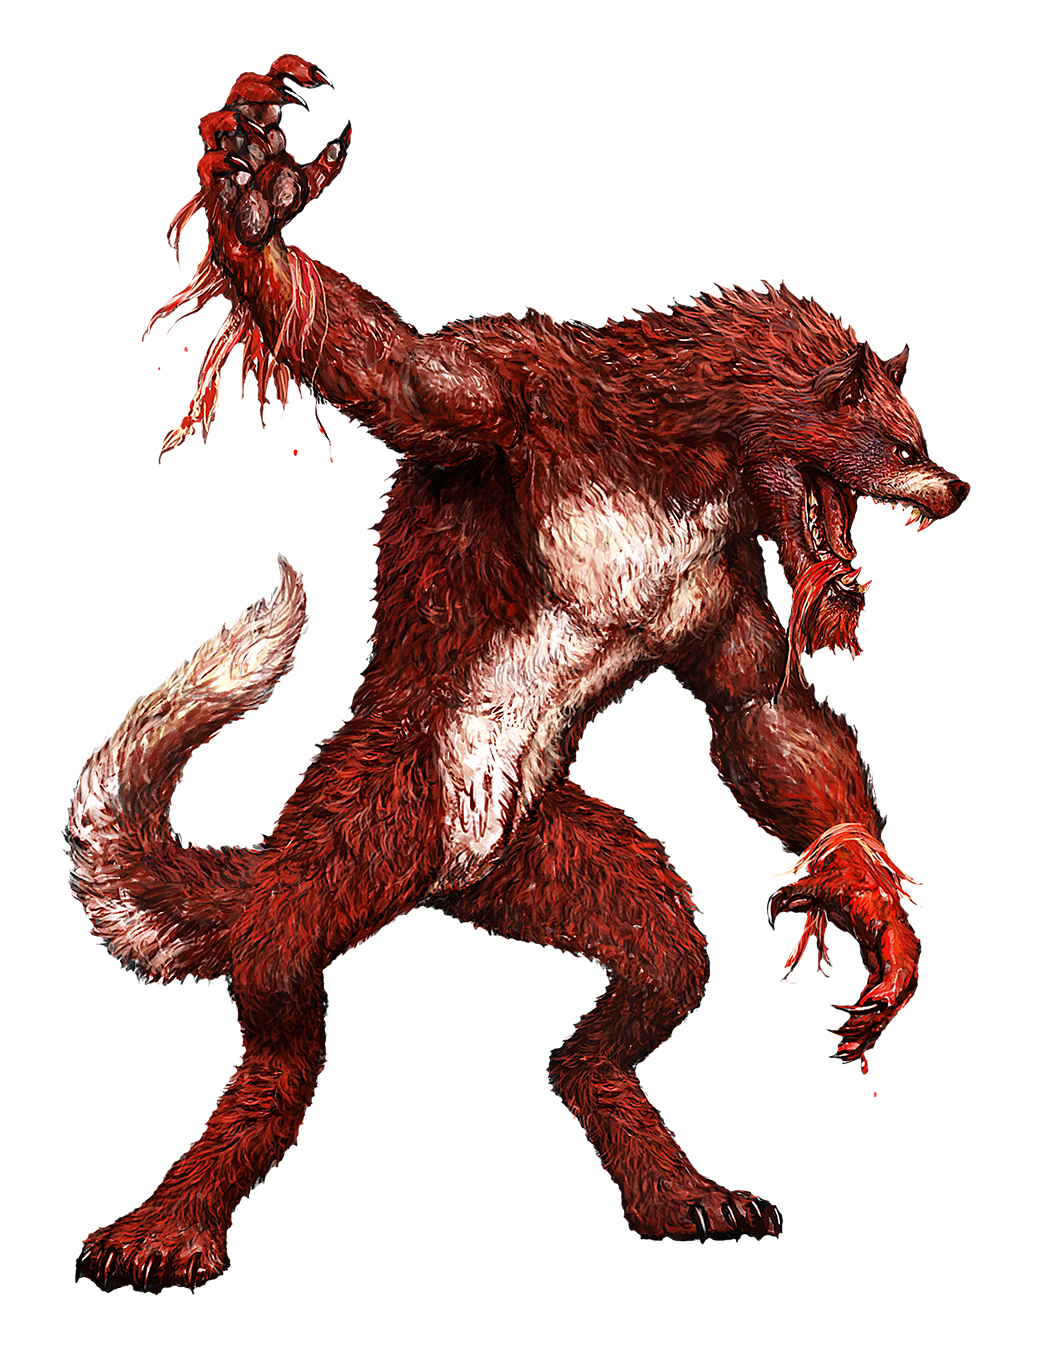 Midgard Monster Lore: The Nightgarm (Part 3)